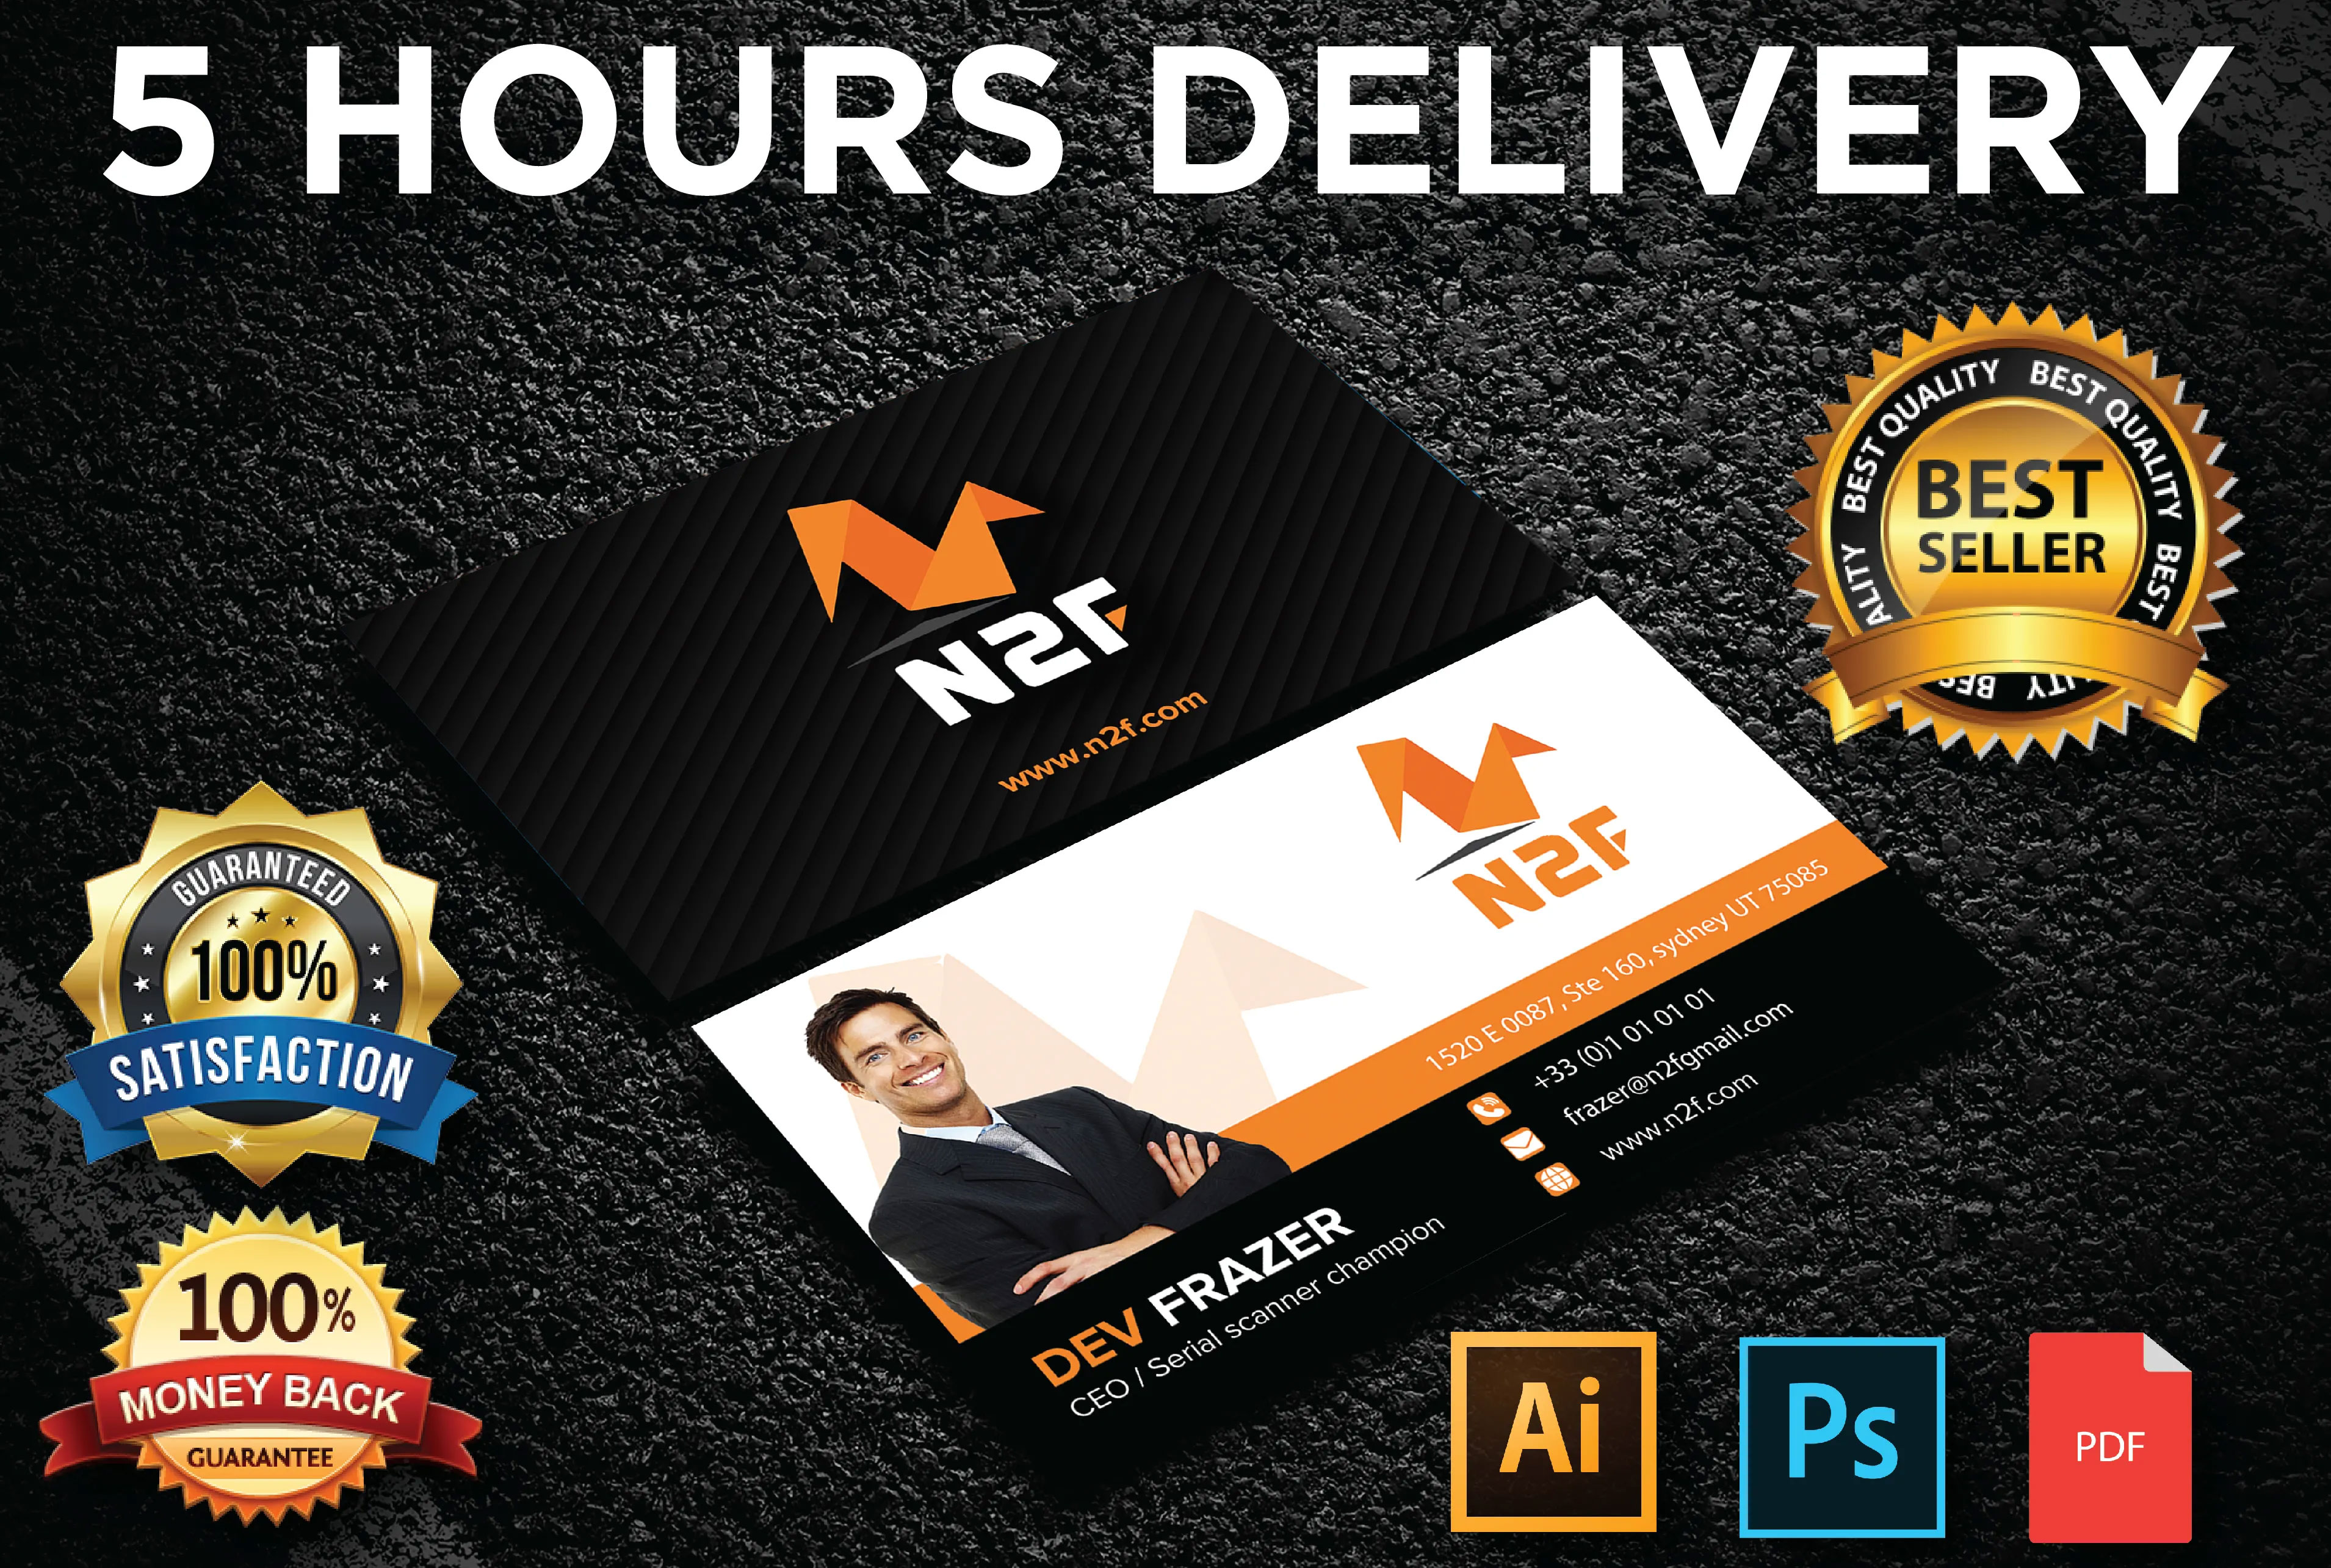 Professional Business Card Design In 12 Hours